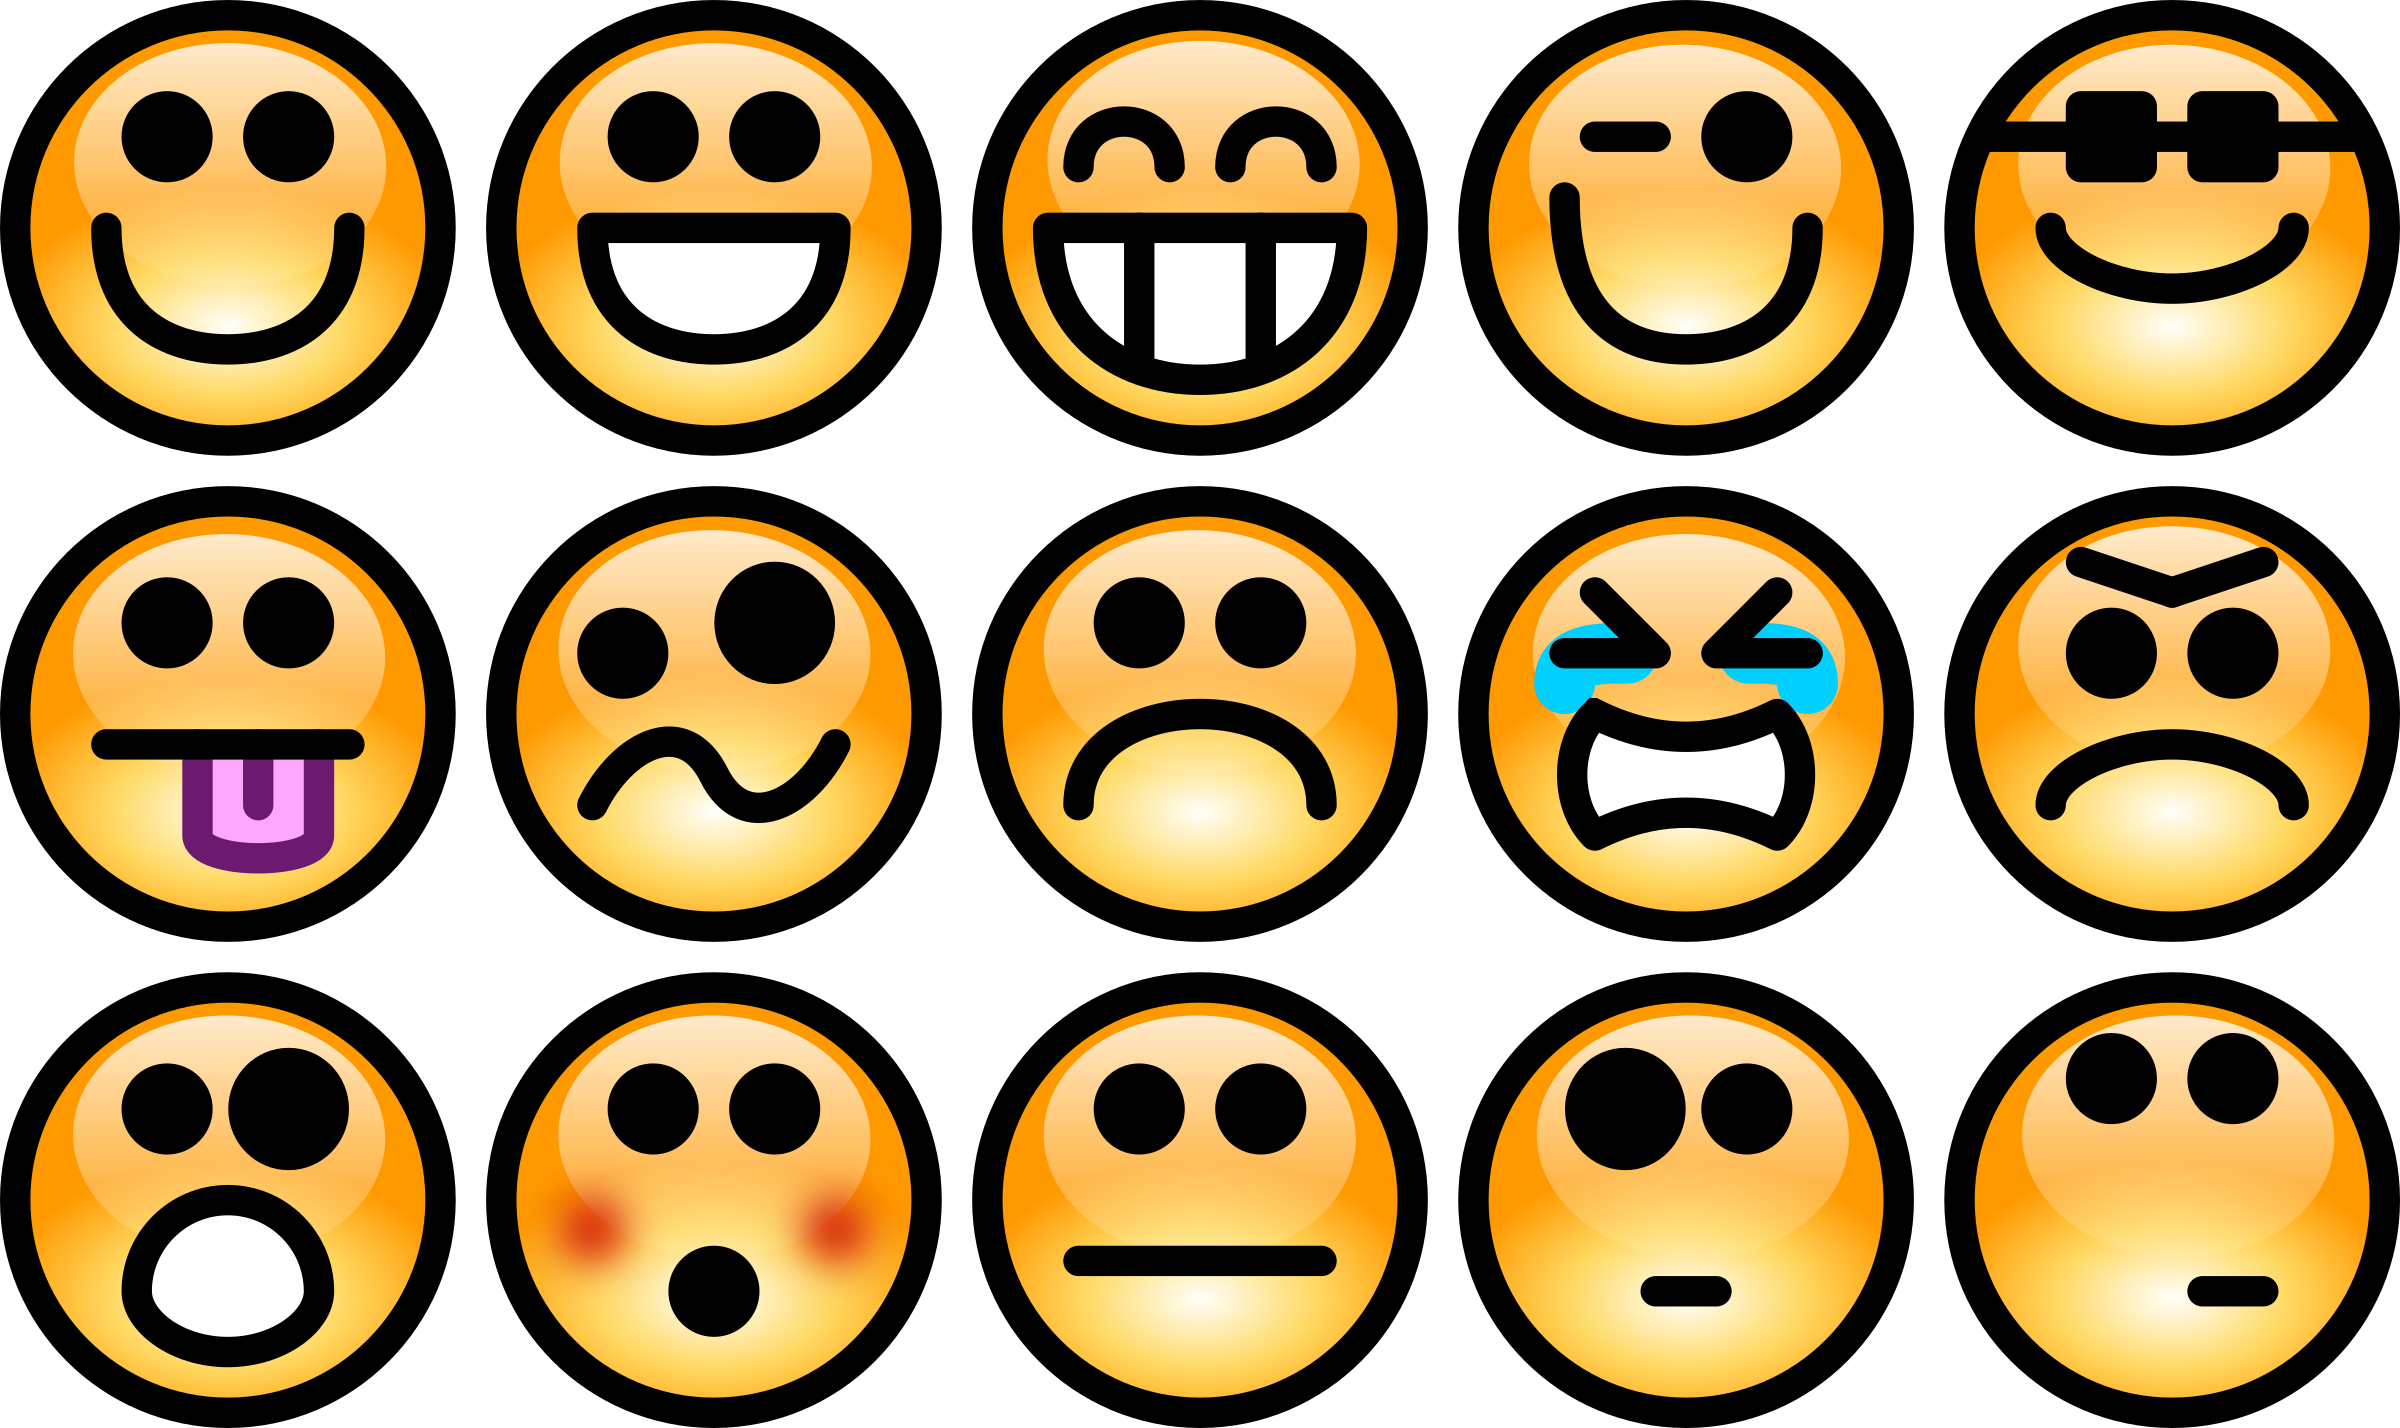 Feelings clipart emotion faces. Glossy smiley set big